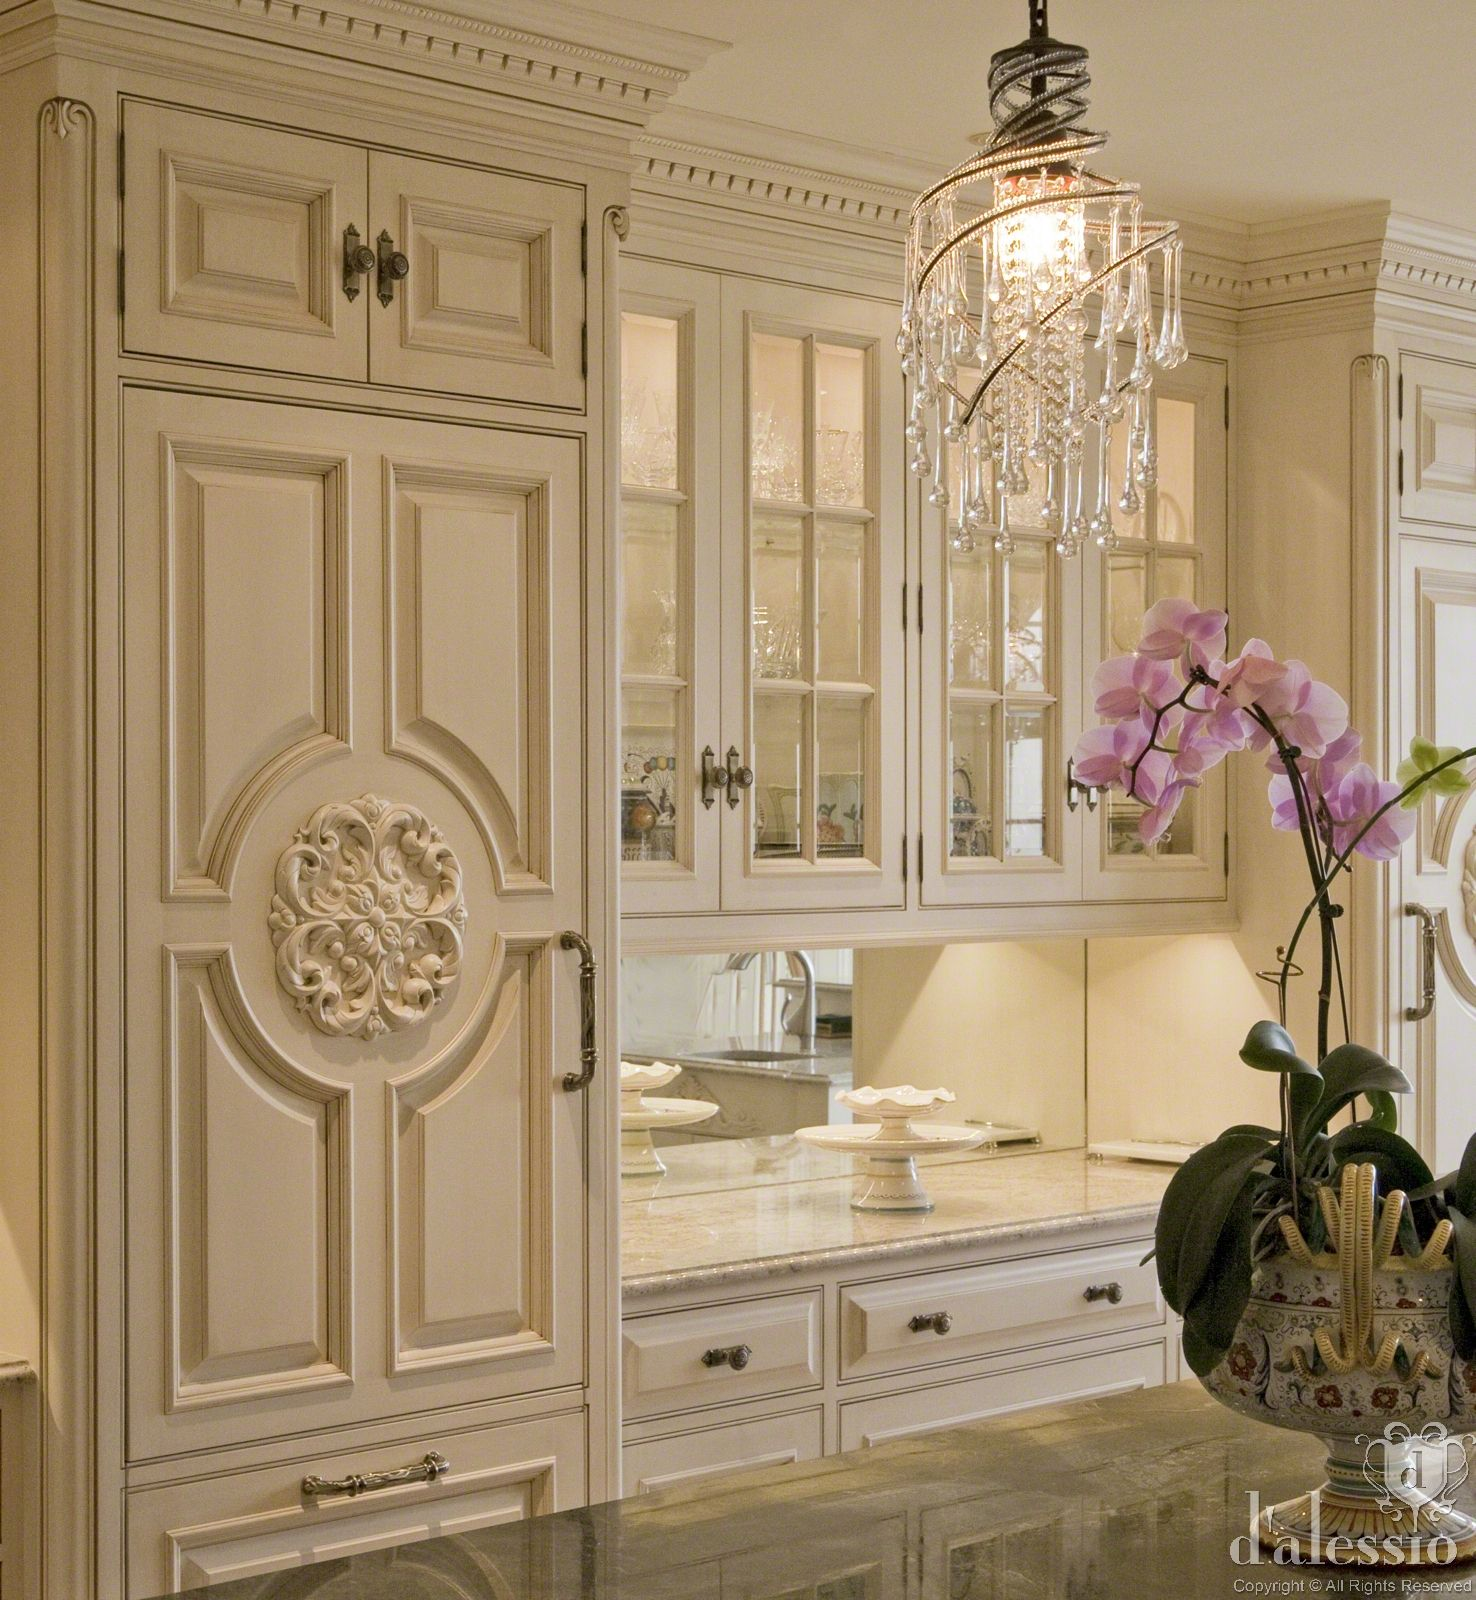 European Kitchens: Gorgeous Design & Millwork Details! European Kitchen By D